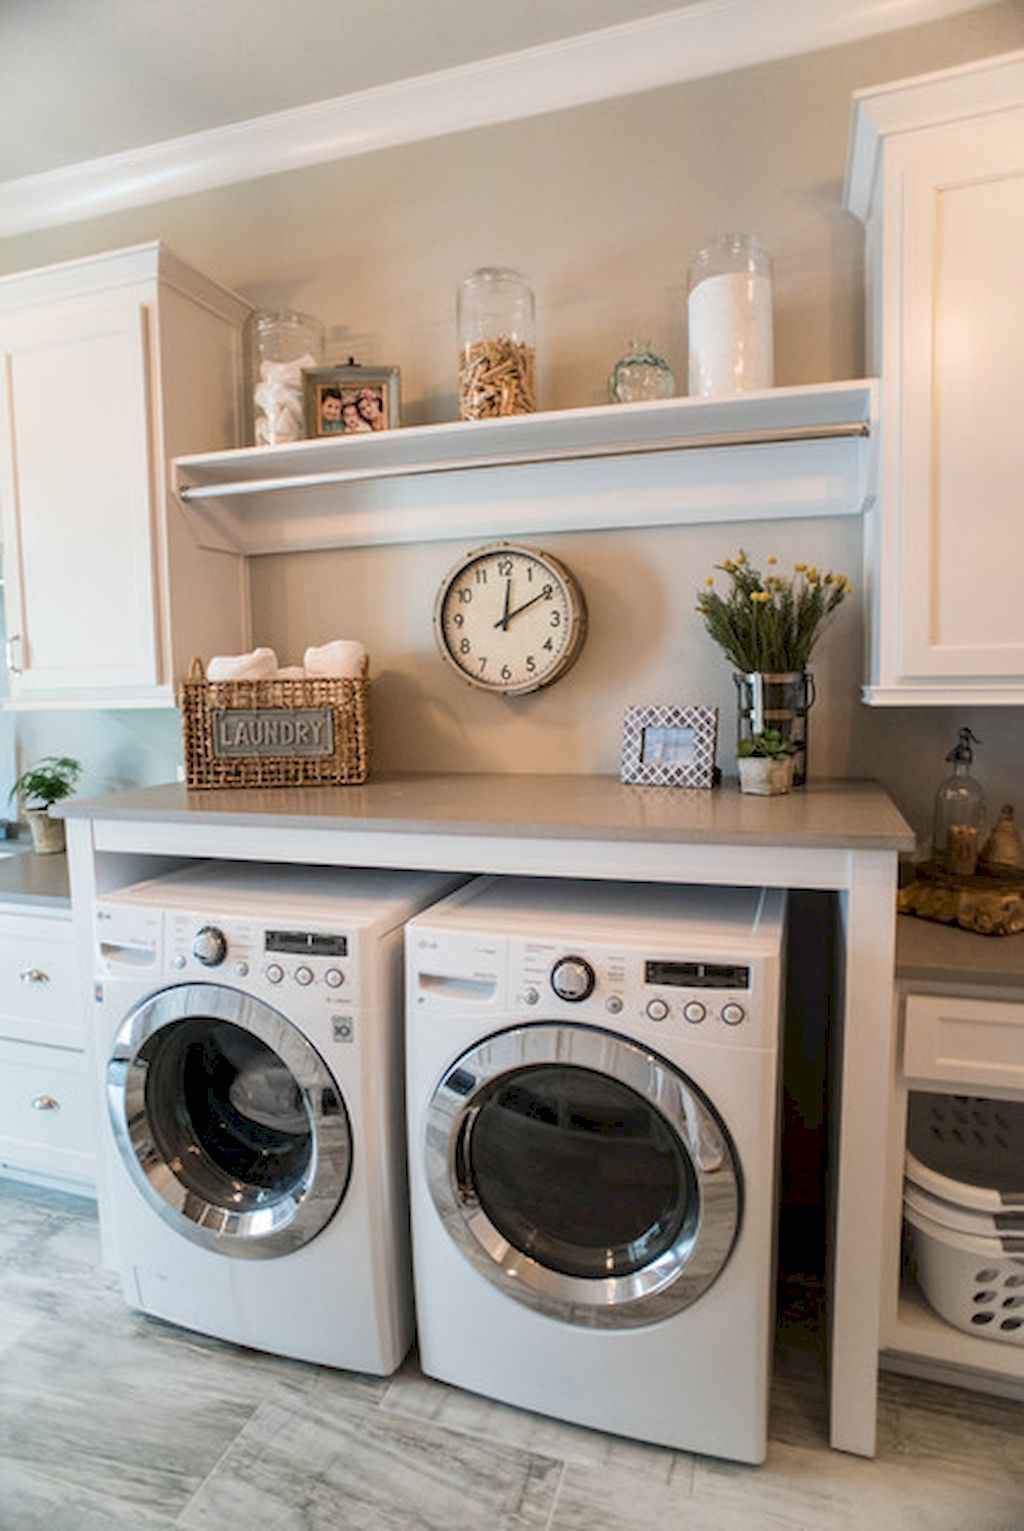 45 Rustic Farmhouse Laundry Room Design Ideas and Makeover (24)